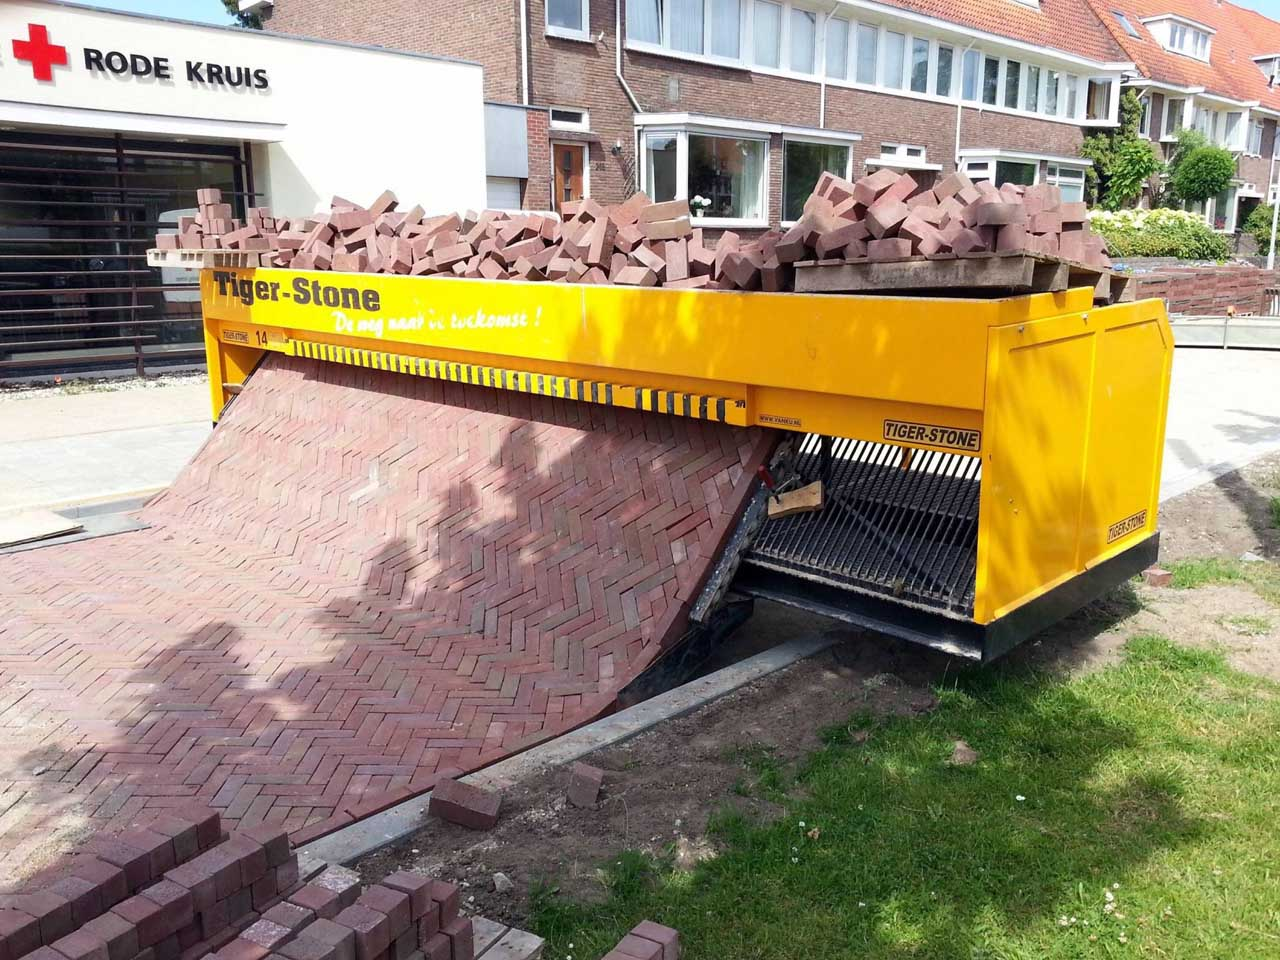 Incredible machine that lays out a carpet of bricks removing back-breaking hard work, question, photos, life, peopel